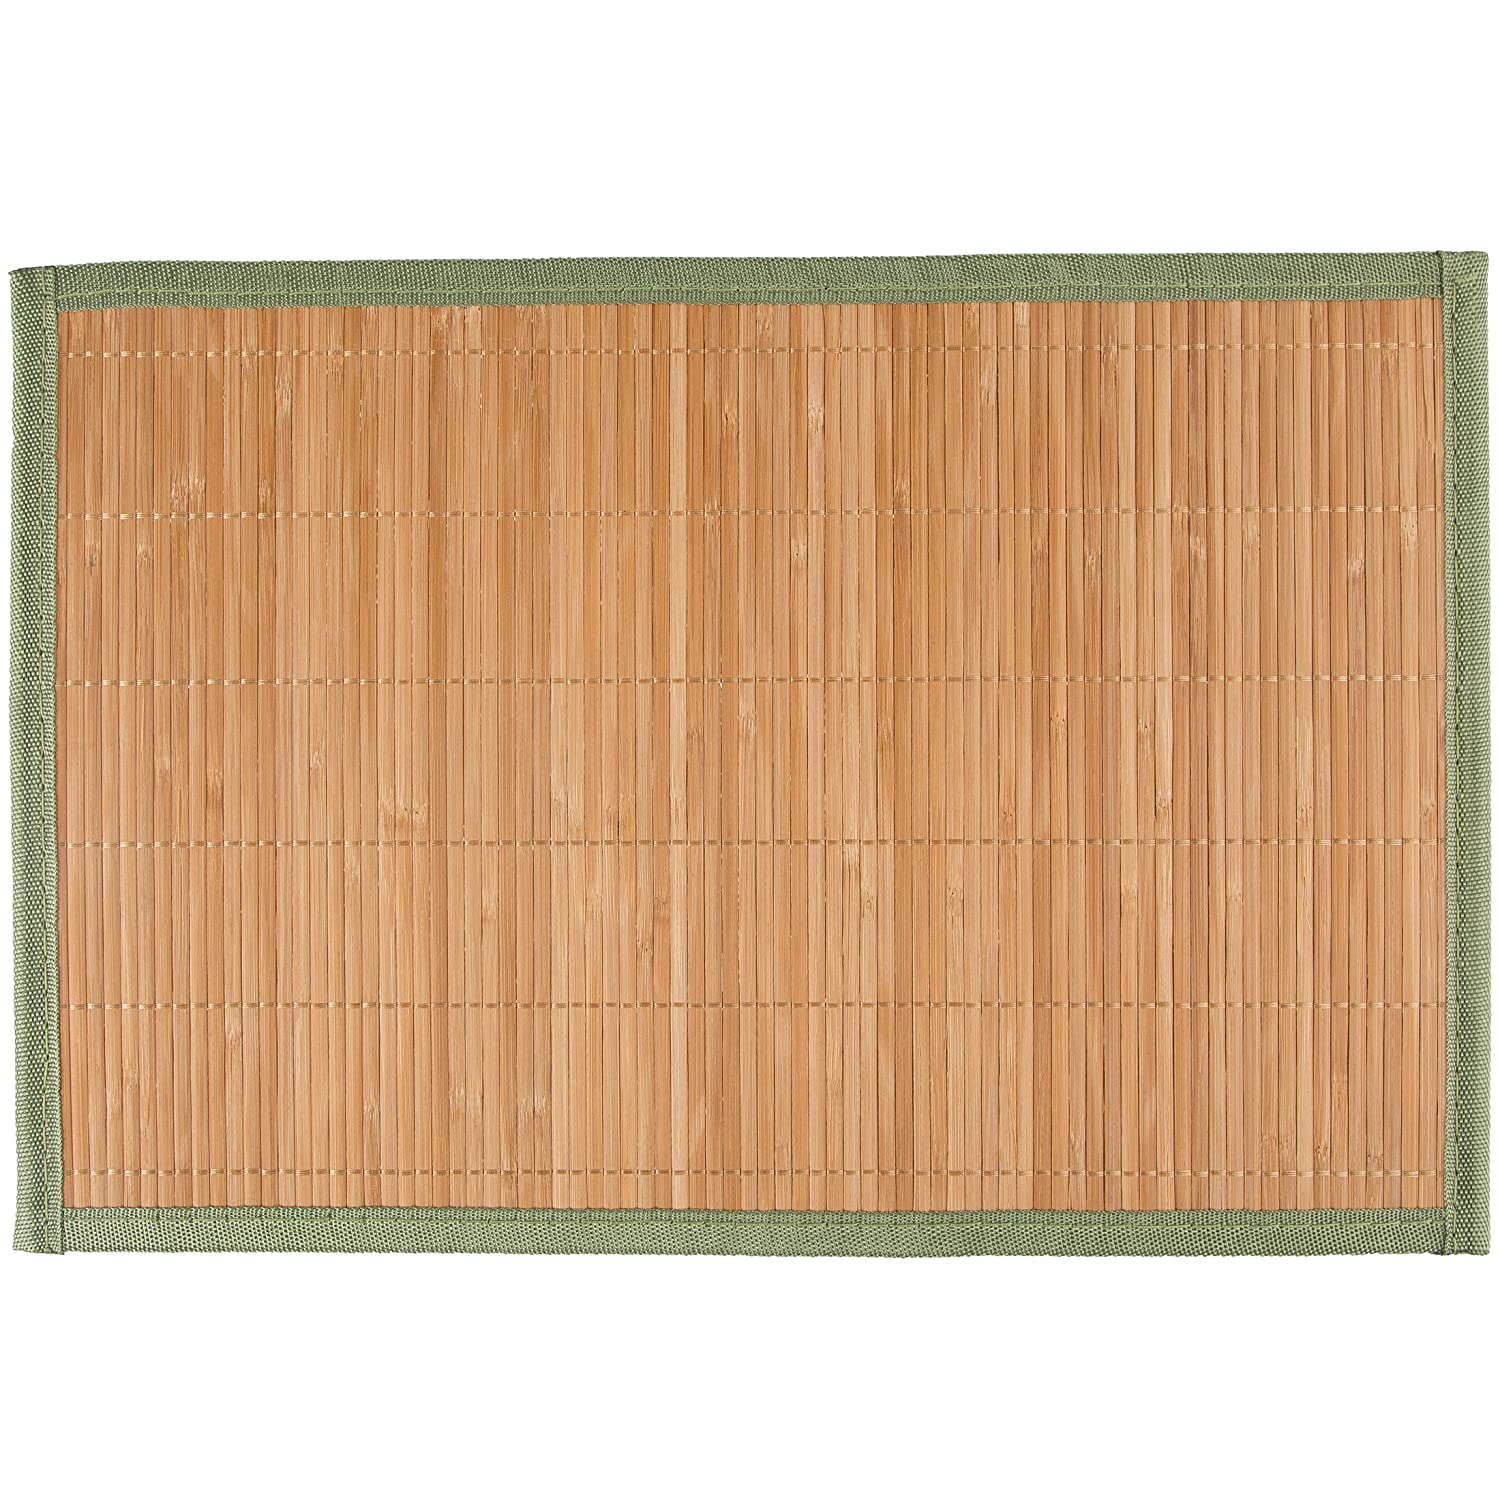 Levivo Place Mats made of Bamboo, Beige, Set of 4 SET128687